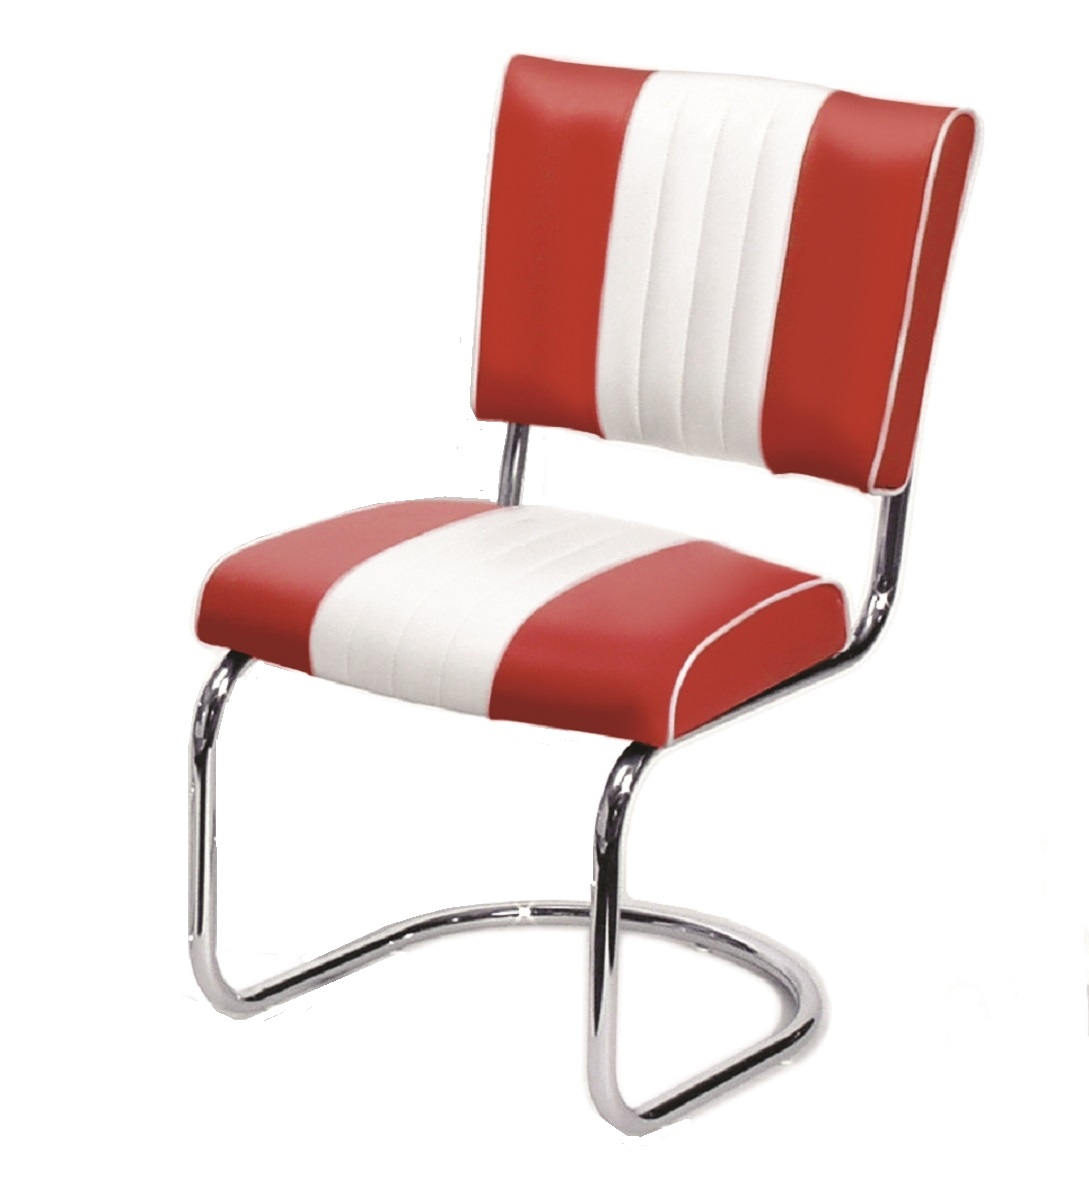 Bel Air Co27 Retro Furniture Diner Chair